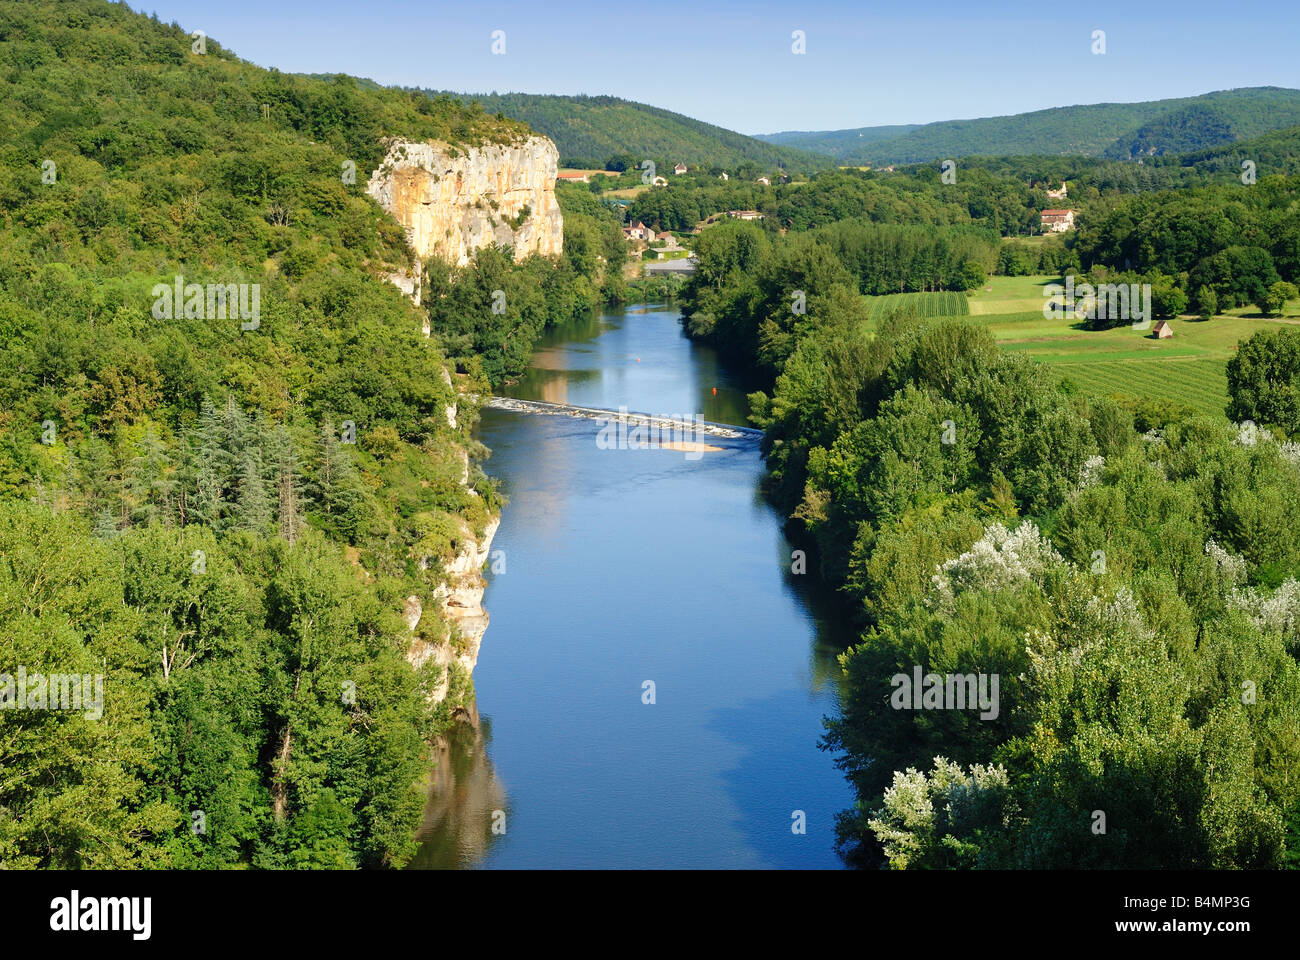 Elevated view of the River Lot between between Saint Cirq Lapopie and Bouziès, Midi Pyrénées, France Stock Photo